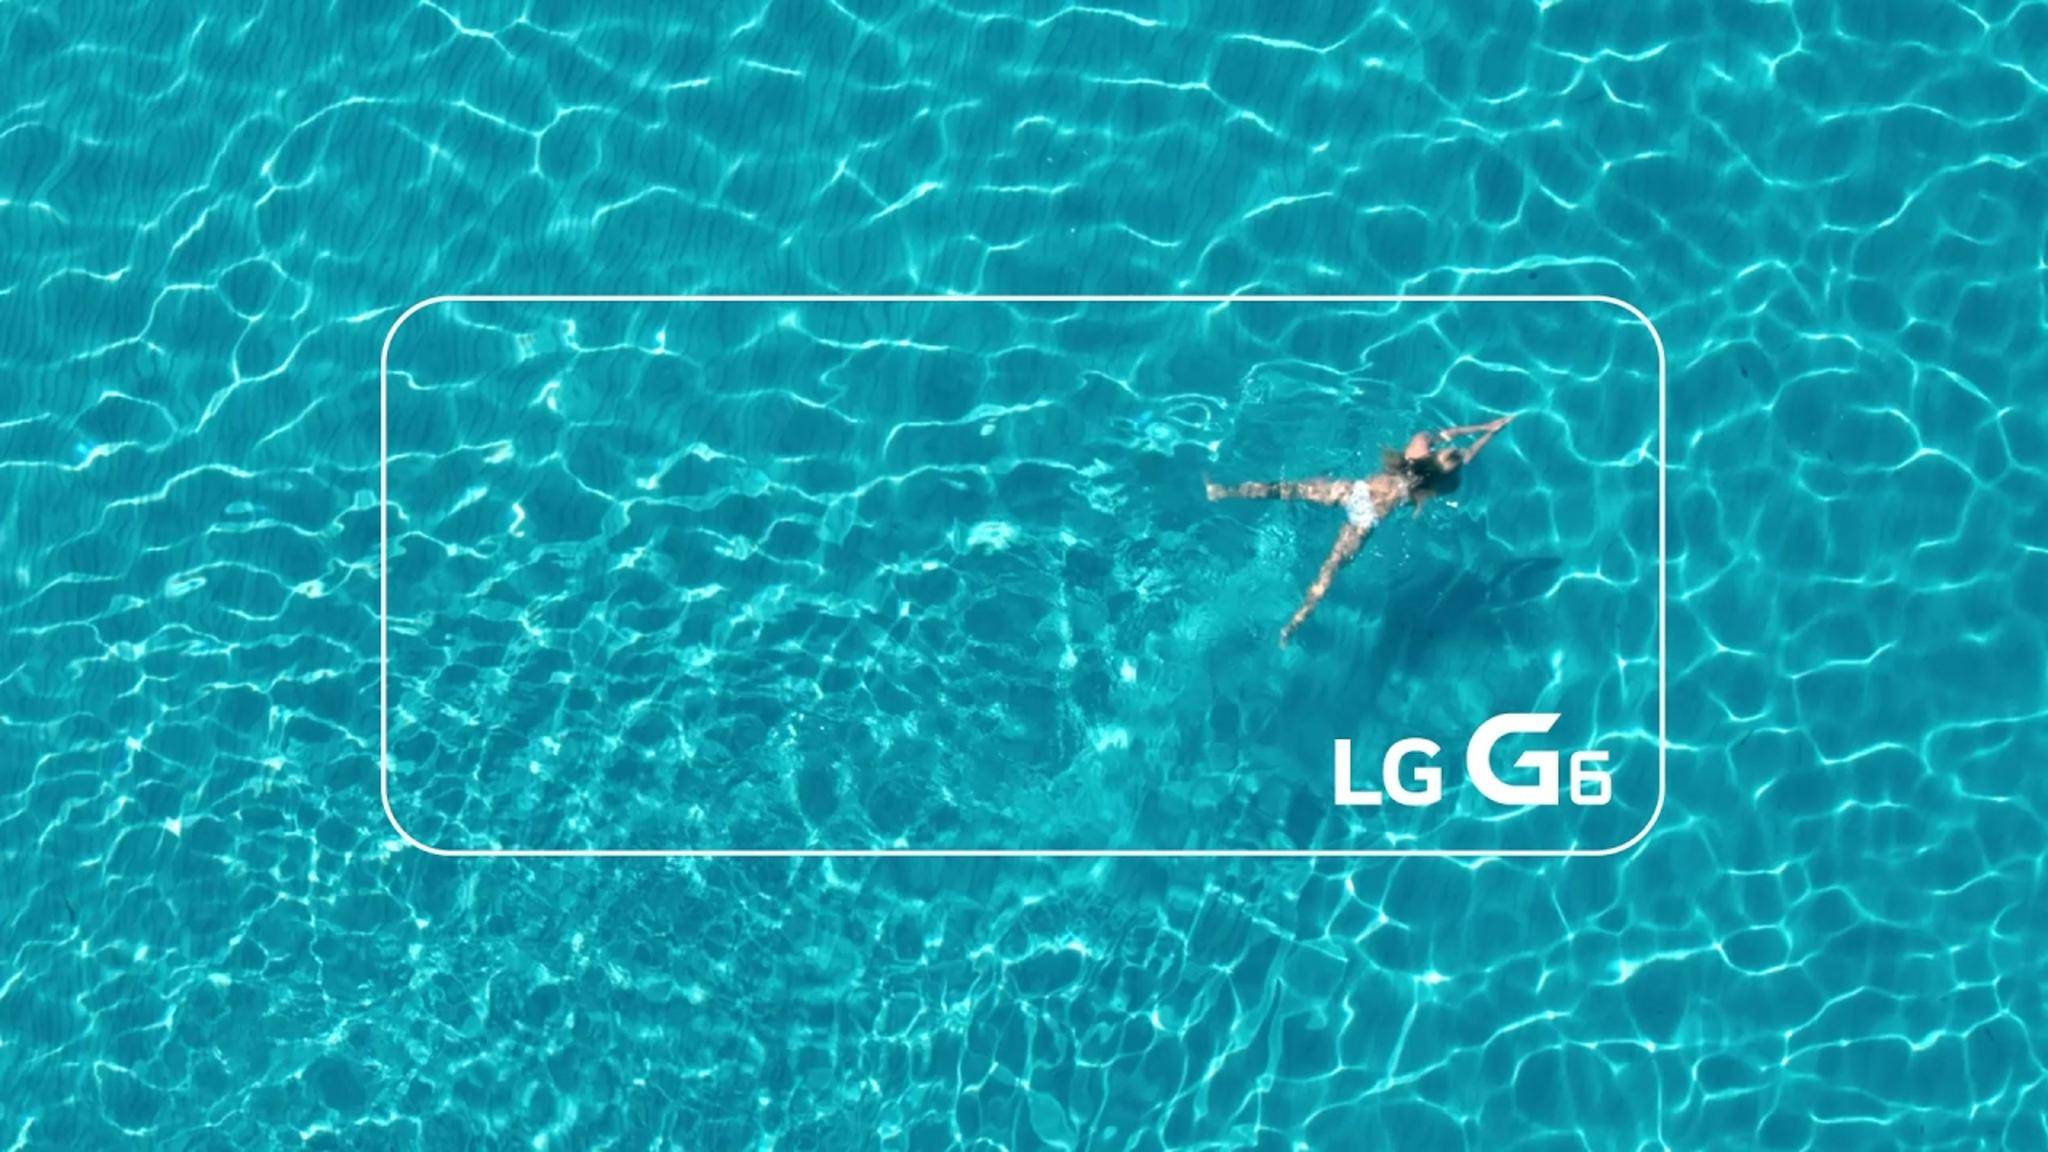 Mit dem LG G6 in den Pool? Angeblich kein Problem.